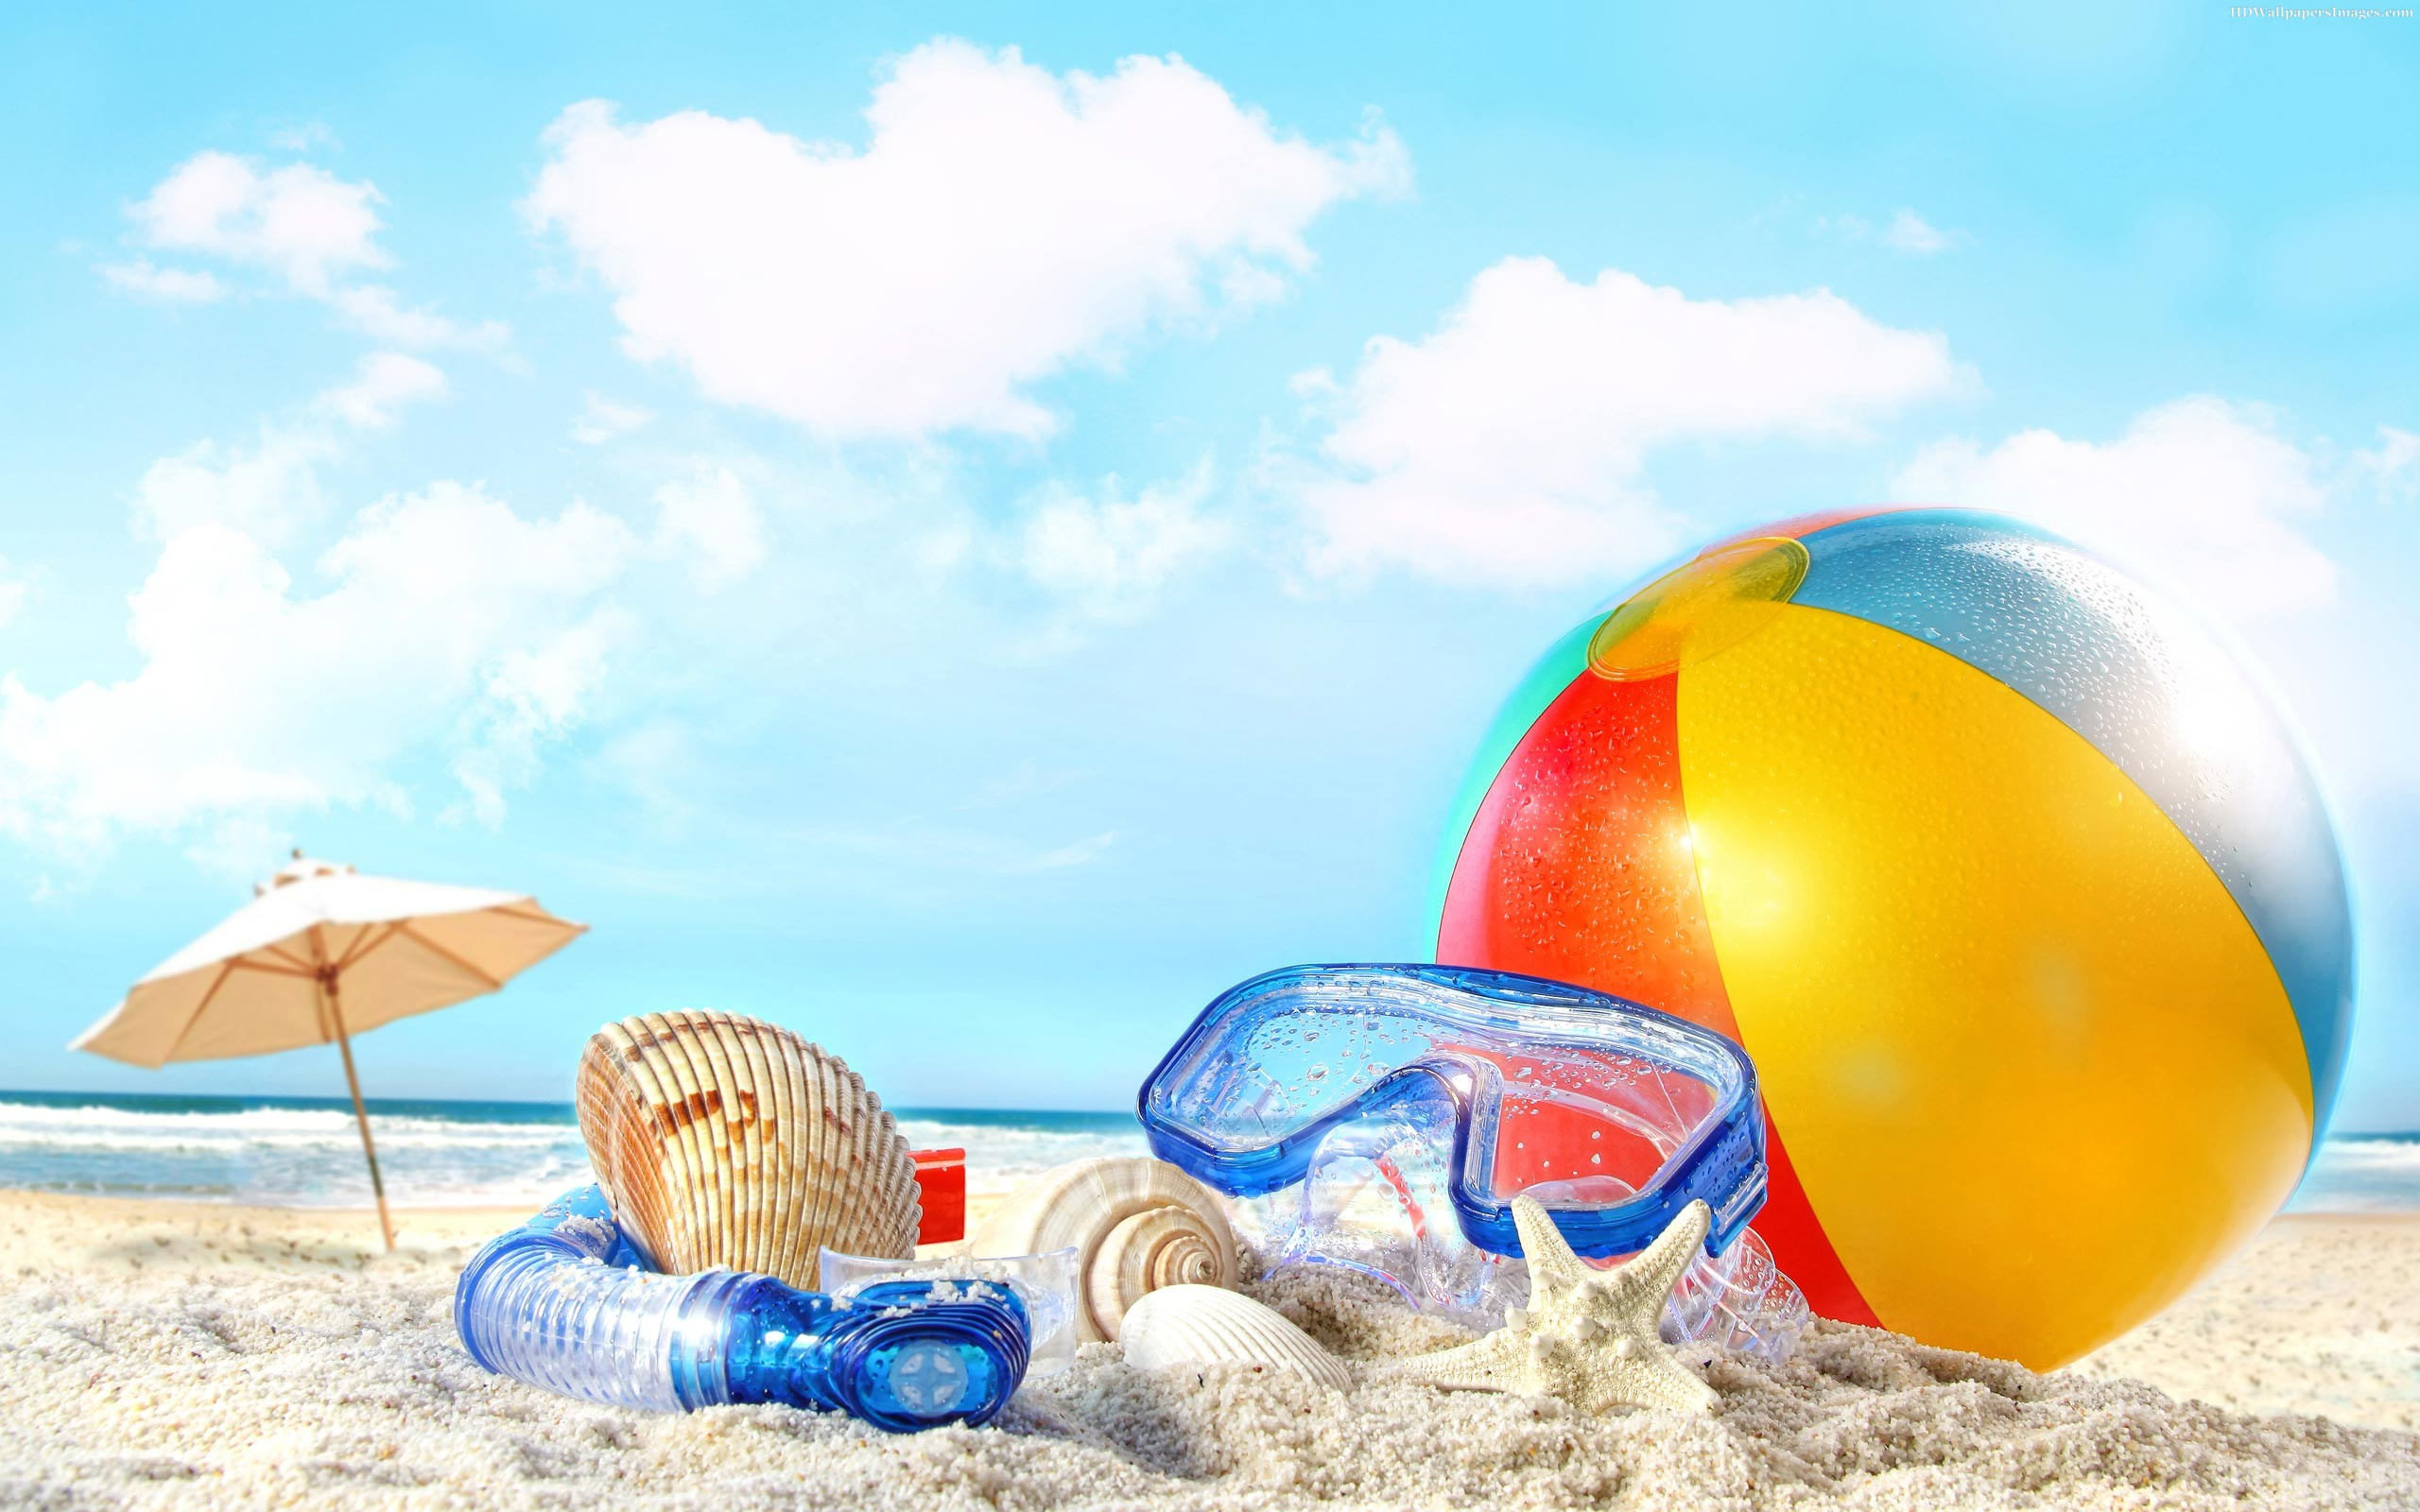 Gallery For > Beach Ball Wallpaper